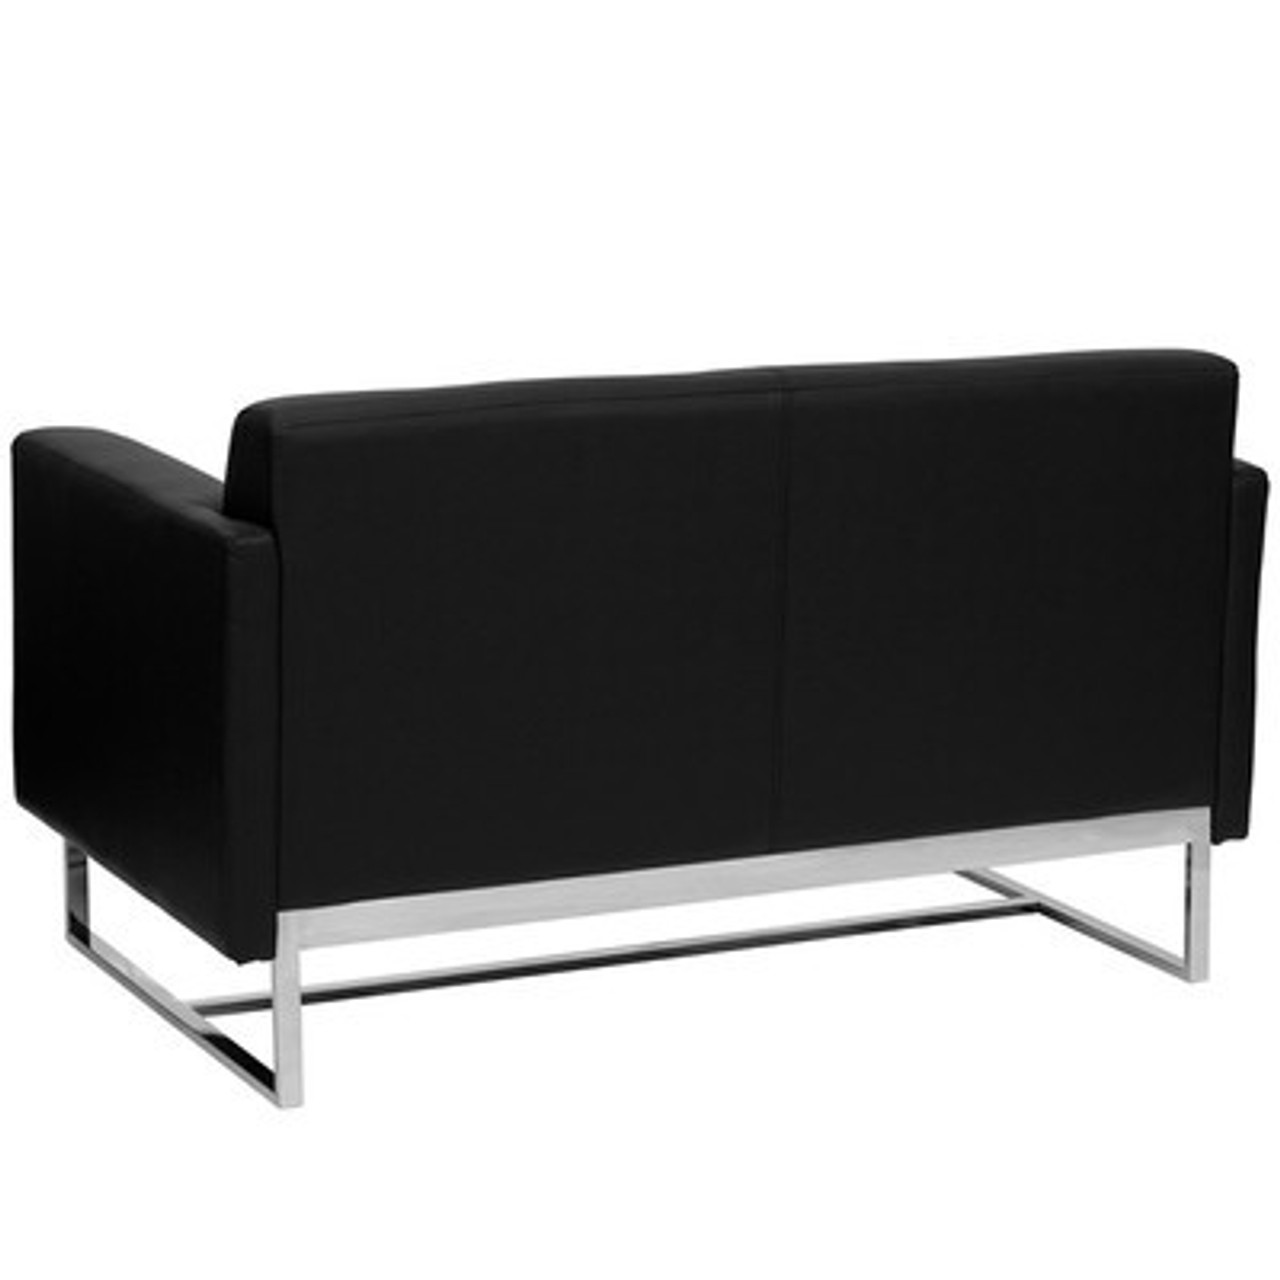 1pc Modern Leather Office Reception Loveseat, FF-0458-12